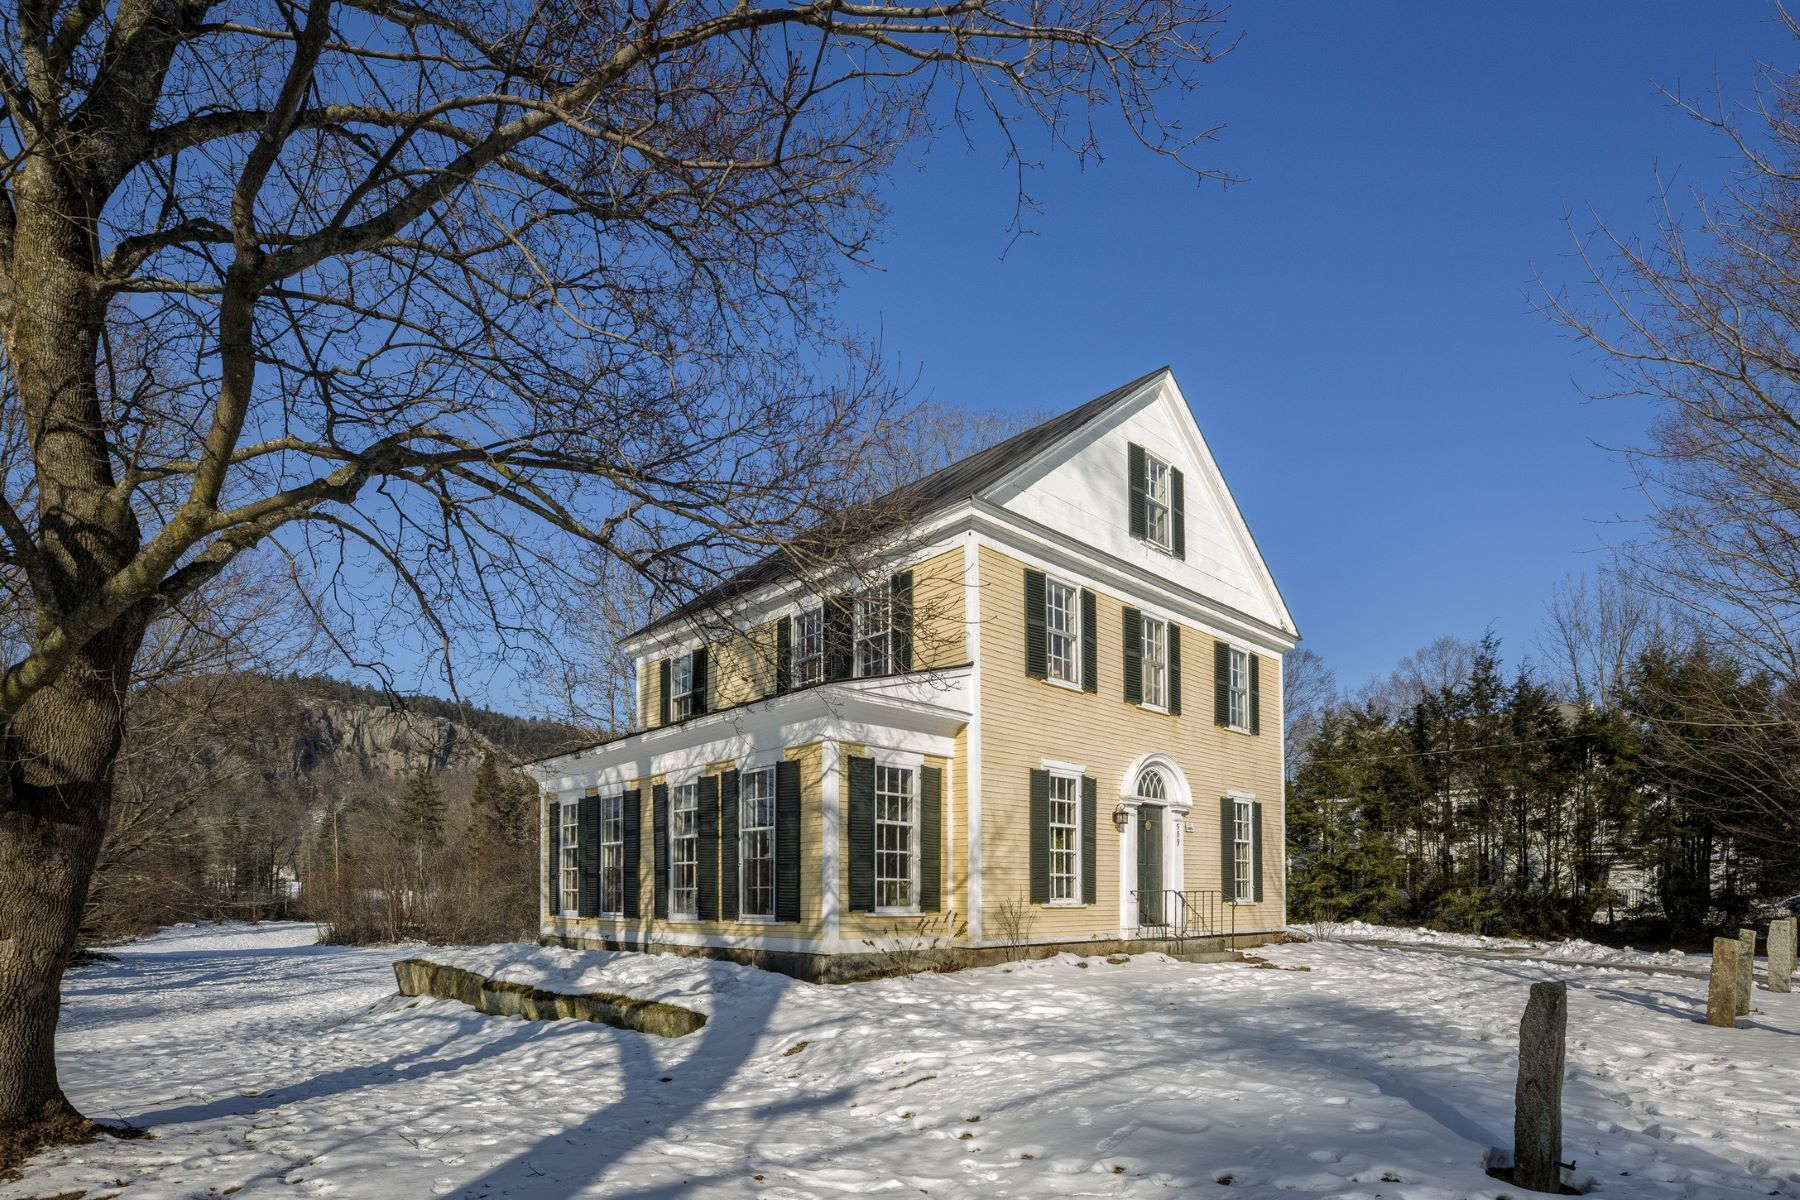 Single Family Home for Sale at Orford Greek Revival 589 Nh Route 10 Orford, New Hampshire 03777 United States